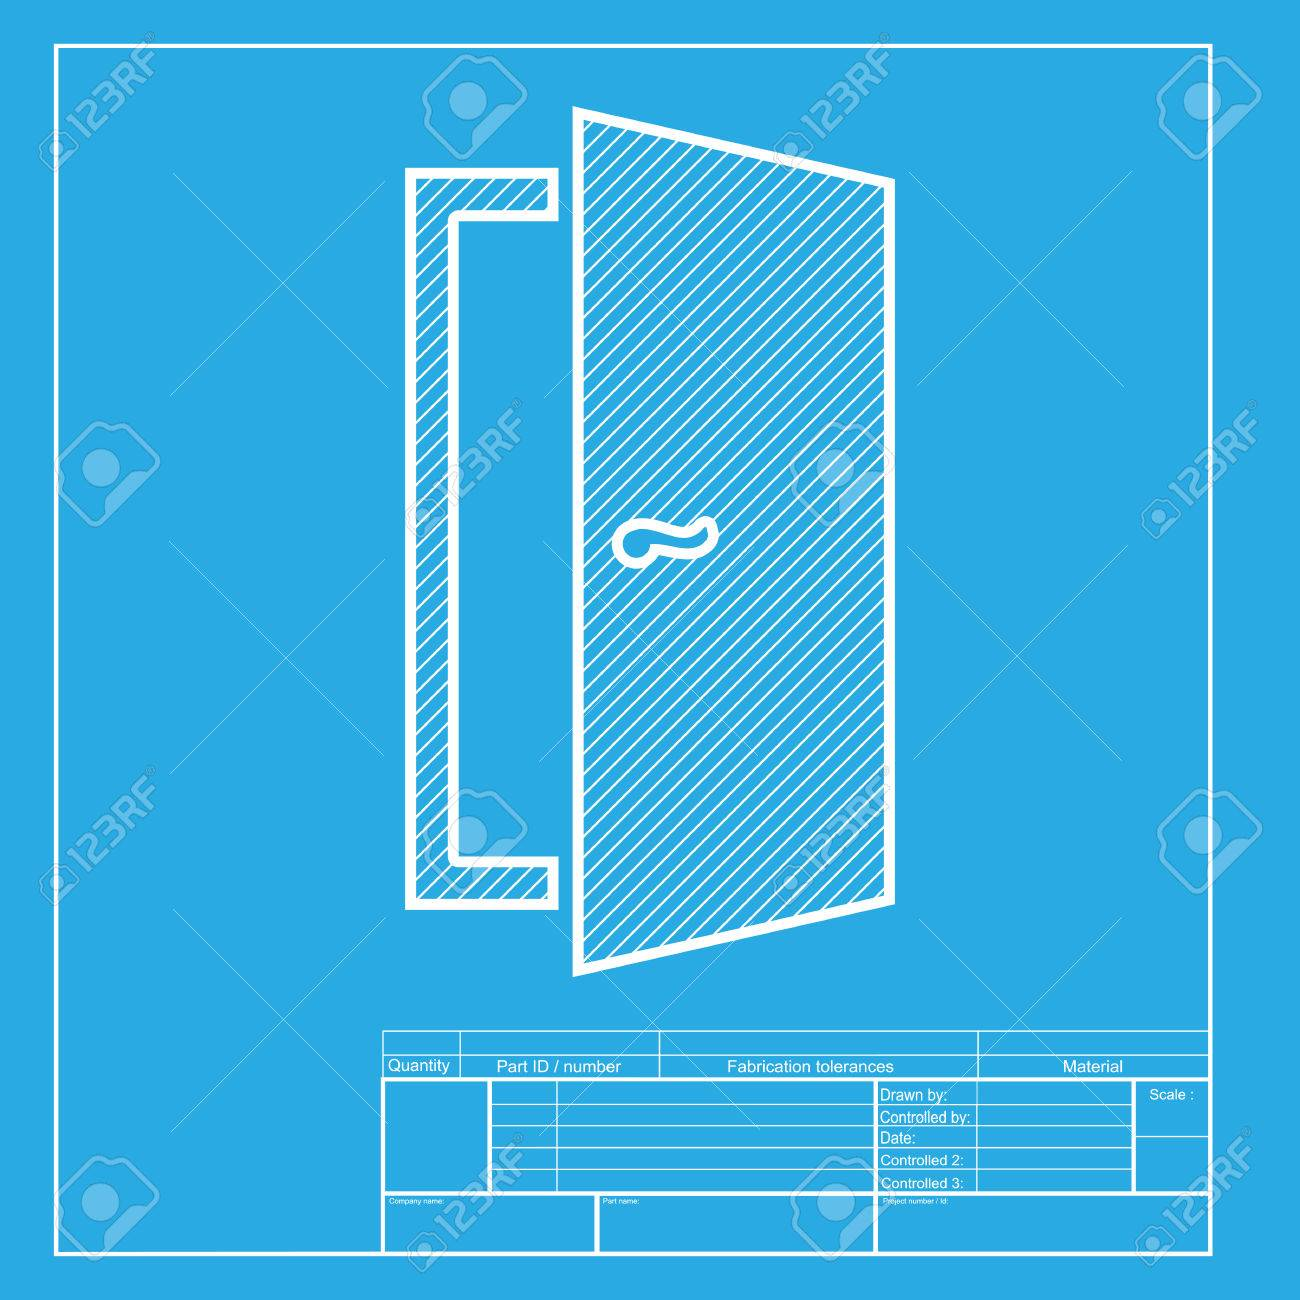 Door sign illustration white section of icon on blueprint template door sign illustration white section of icon on blueprint template stock vector 58755535 maxwellsz